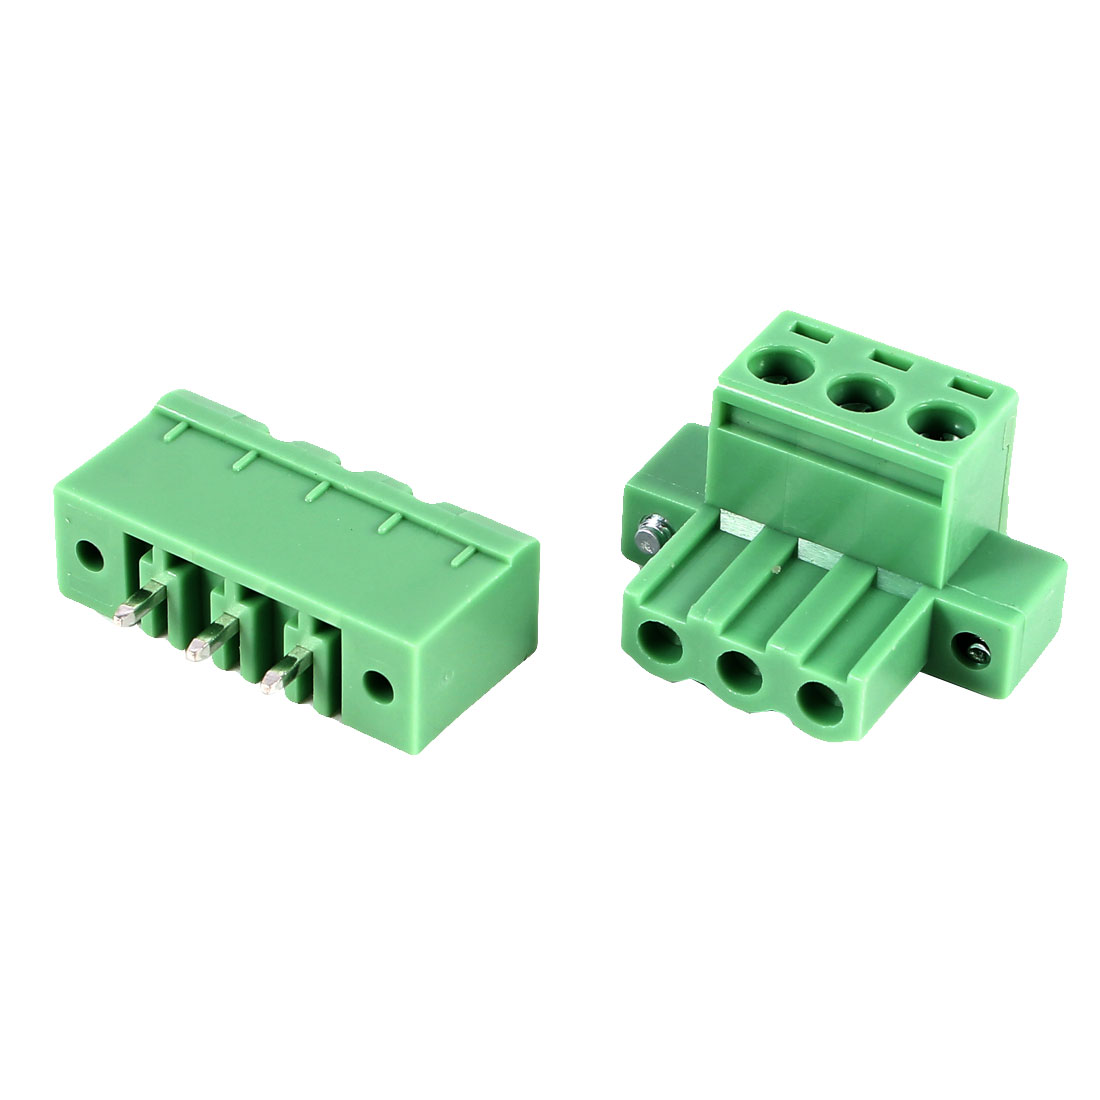 Green KF2EDGKM 5.08mm 3Position Right Angle 6Pin Pluggable Screw Terminal Block Connector 300V 10A